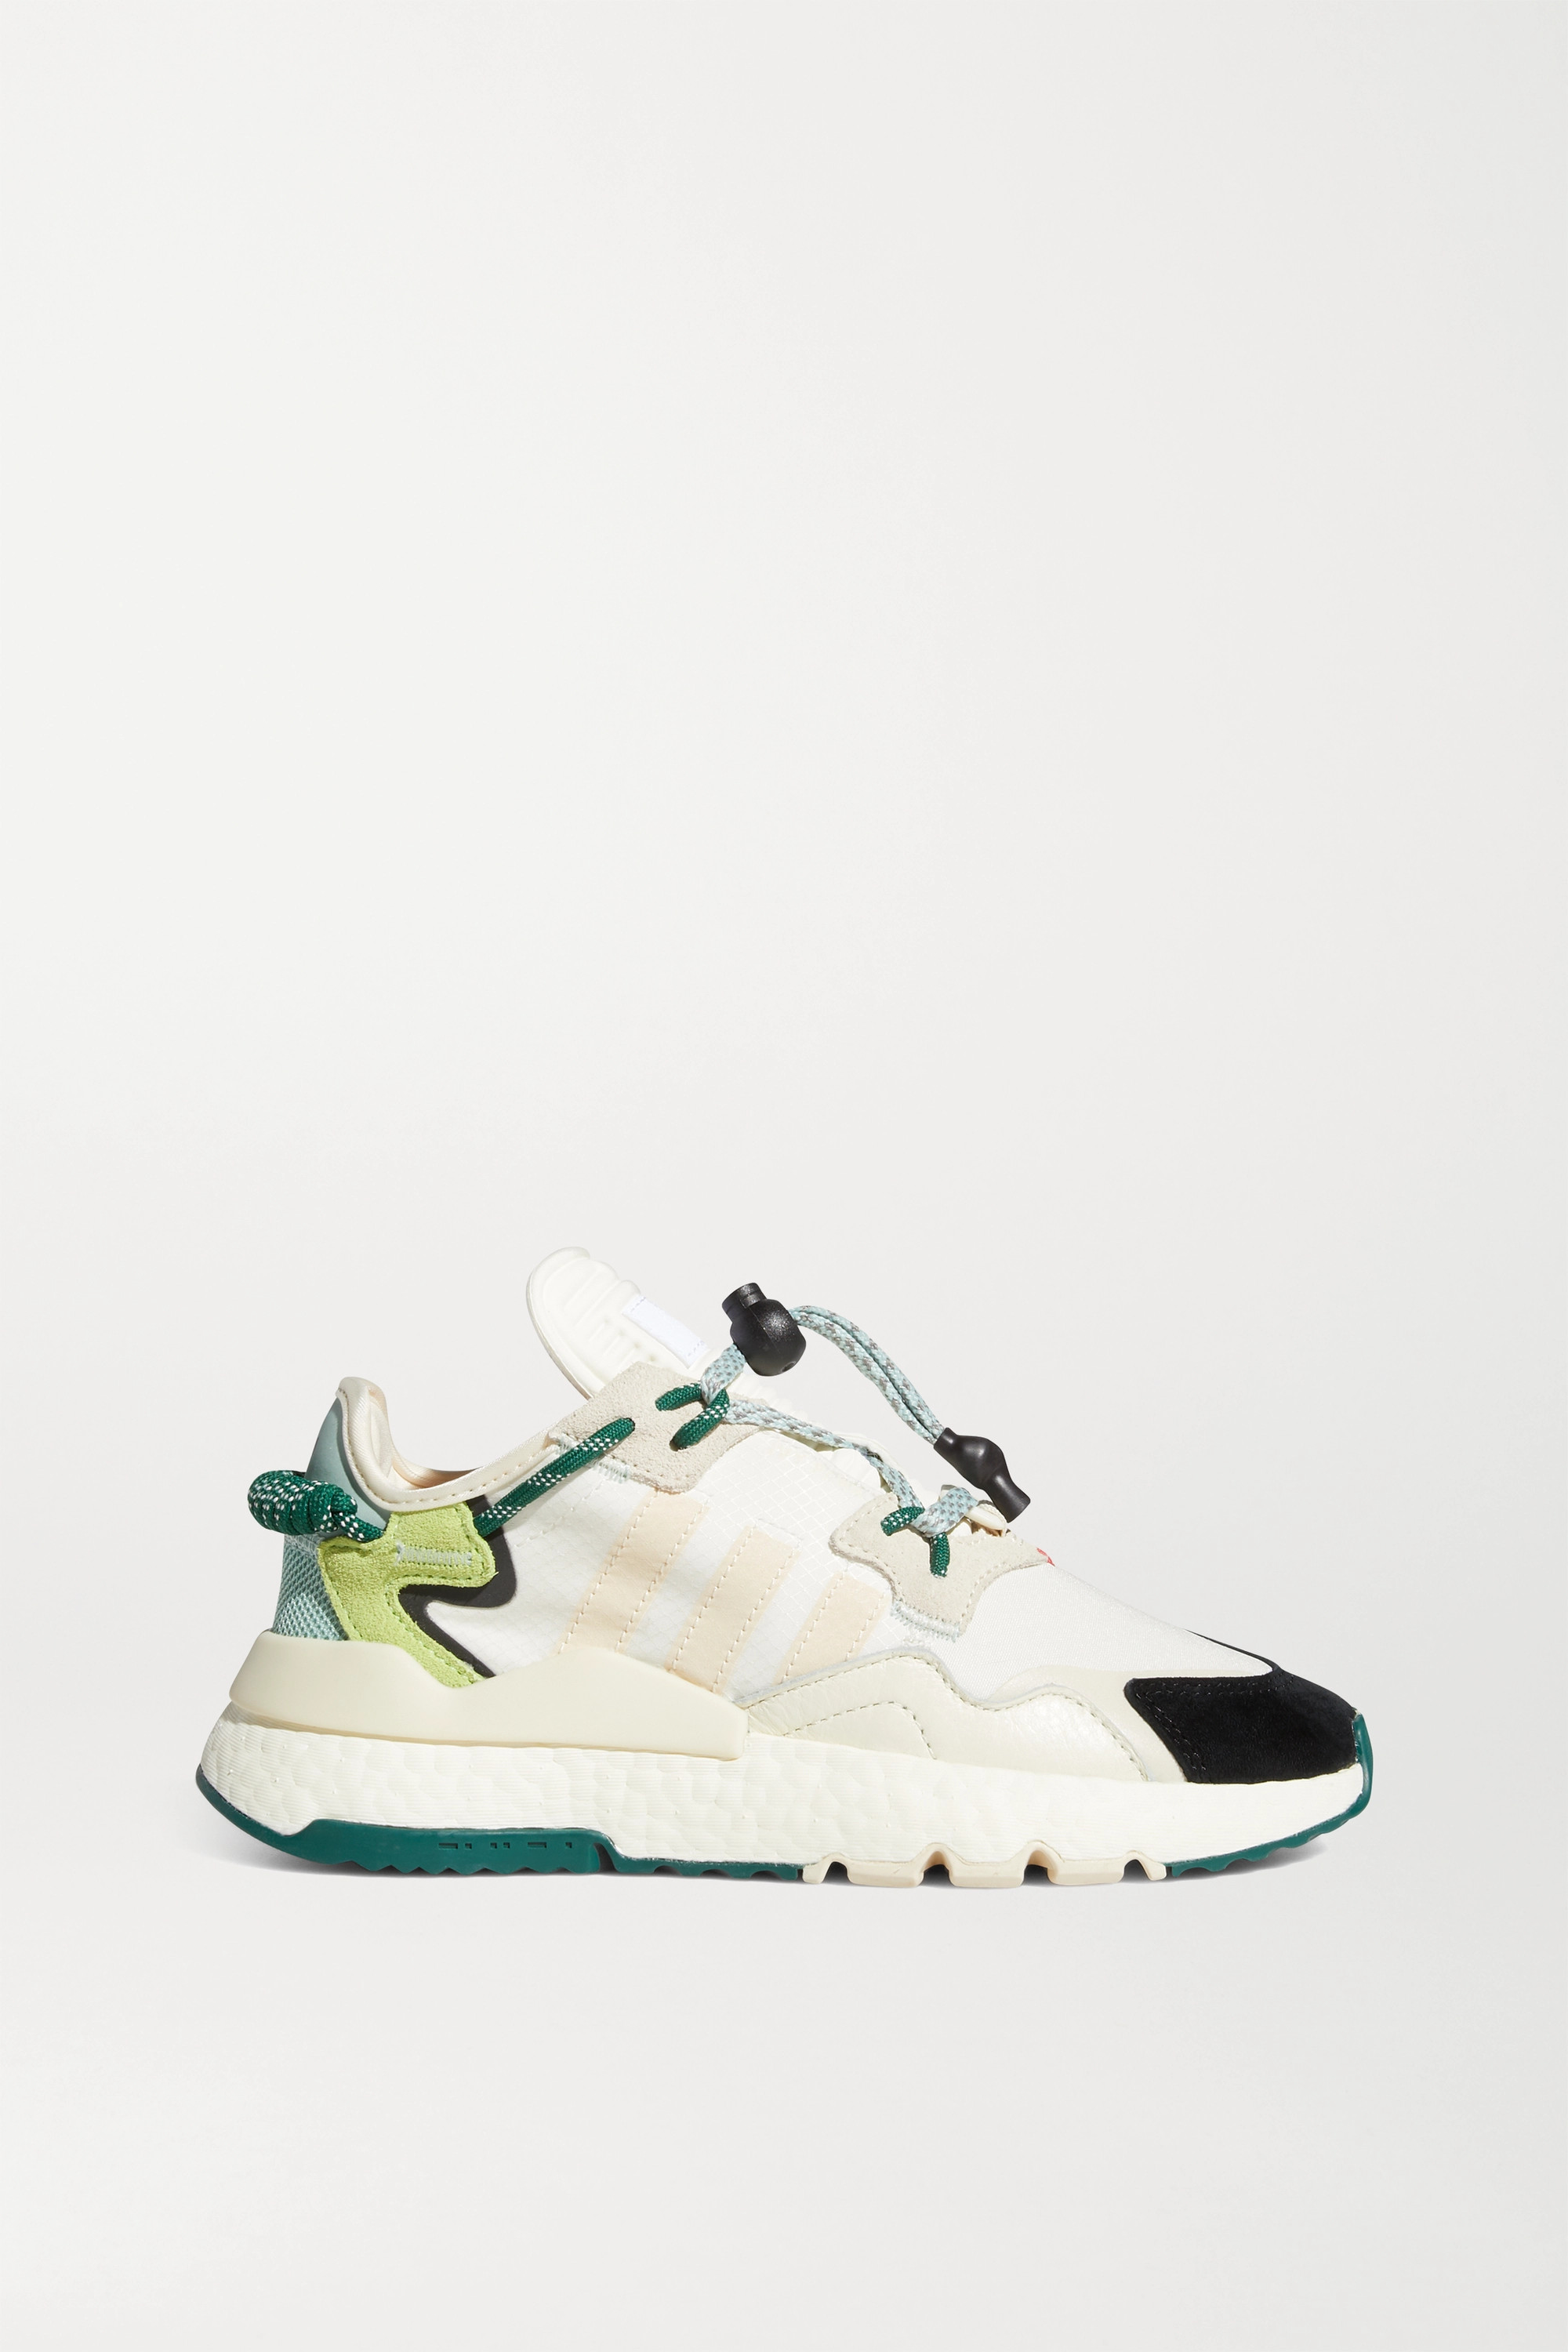 adidas Originals + Ivy Park Nite Jogger ripstop, neoprene and suede sneakers